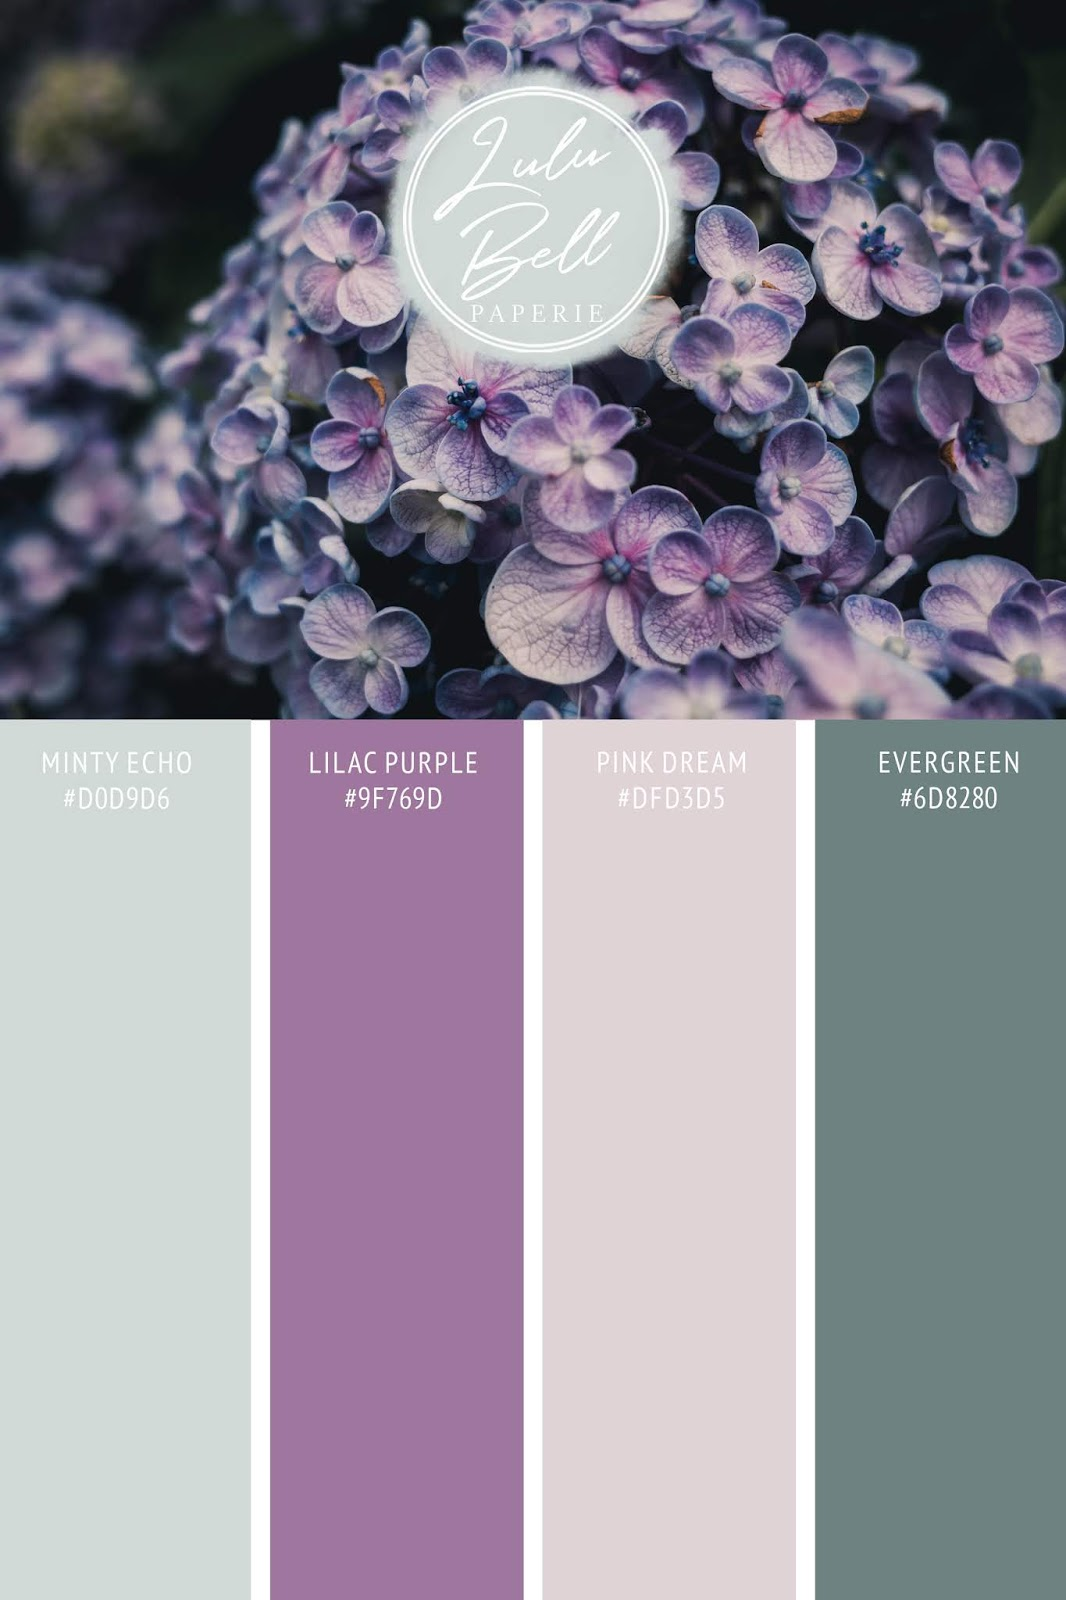 Lilac floral wedding collection's color palette card. With swatches and color hex codes. In lilac purple, minty echo, pink dream, and evergreen color scheme.